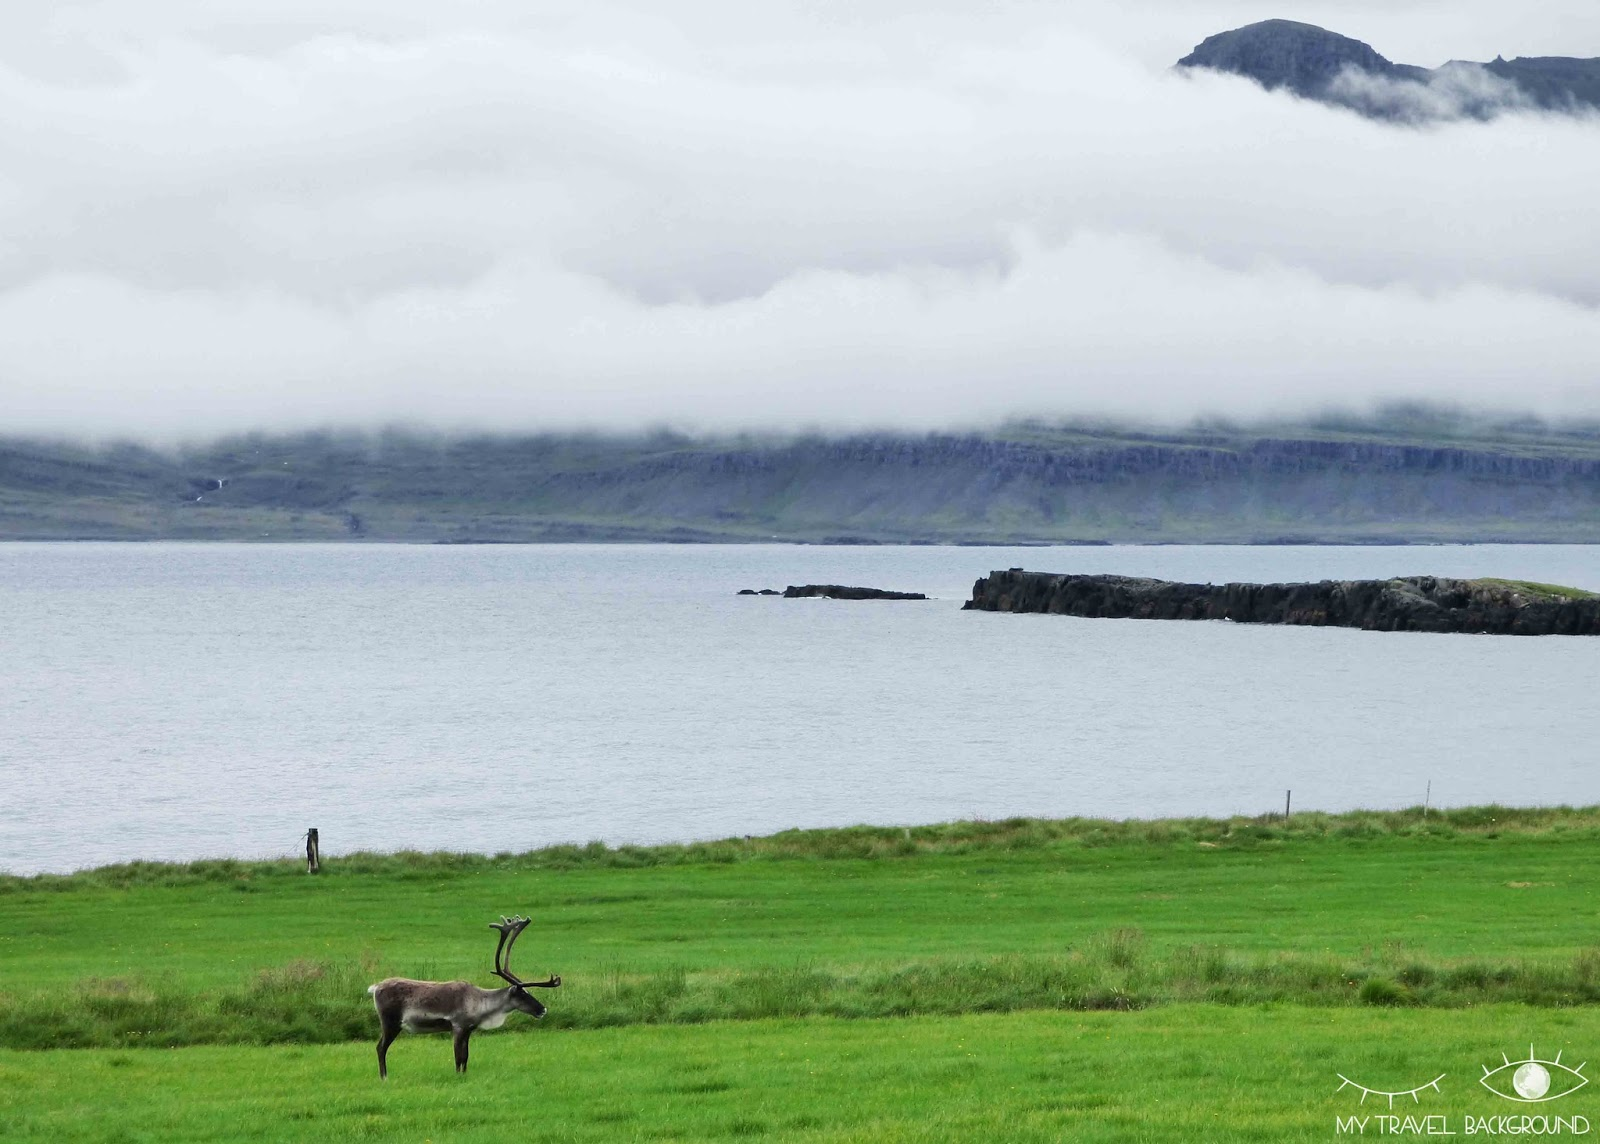 My Travel Background : Islande, en route vers les fjords de l'Est - Breiddalsvik